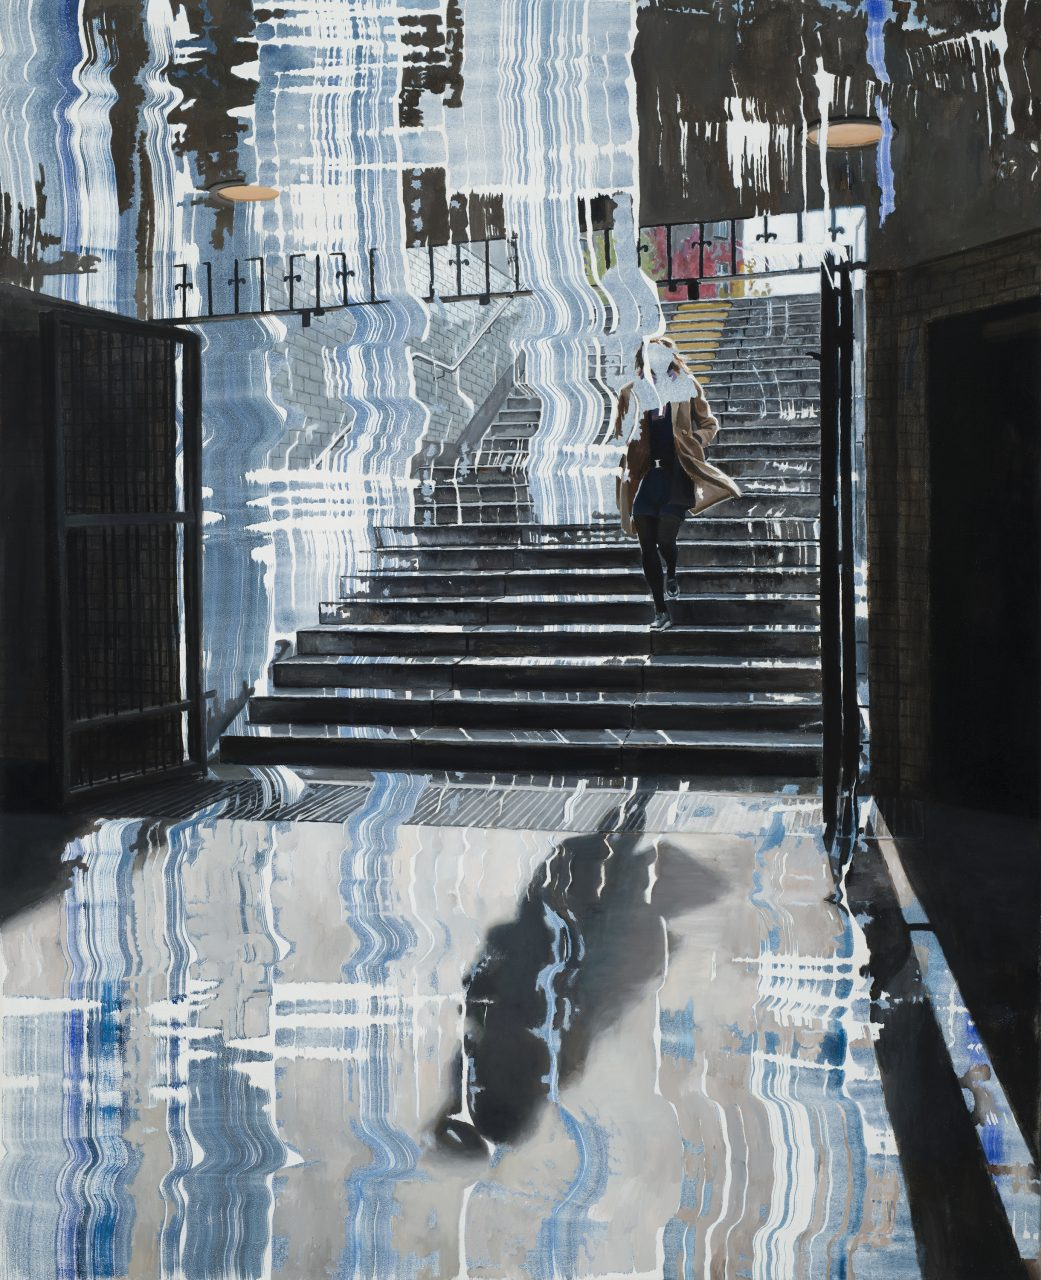 Stillness is a Lie, 2016, acrylic and oil on canvas, 160 x 130 cm